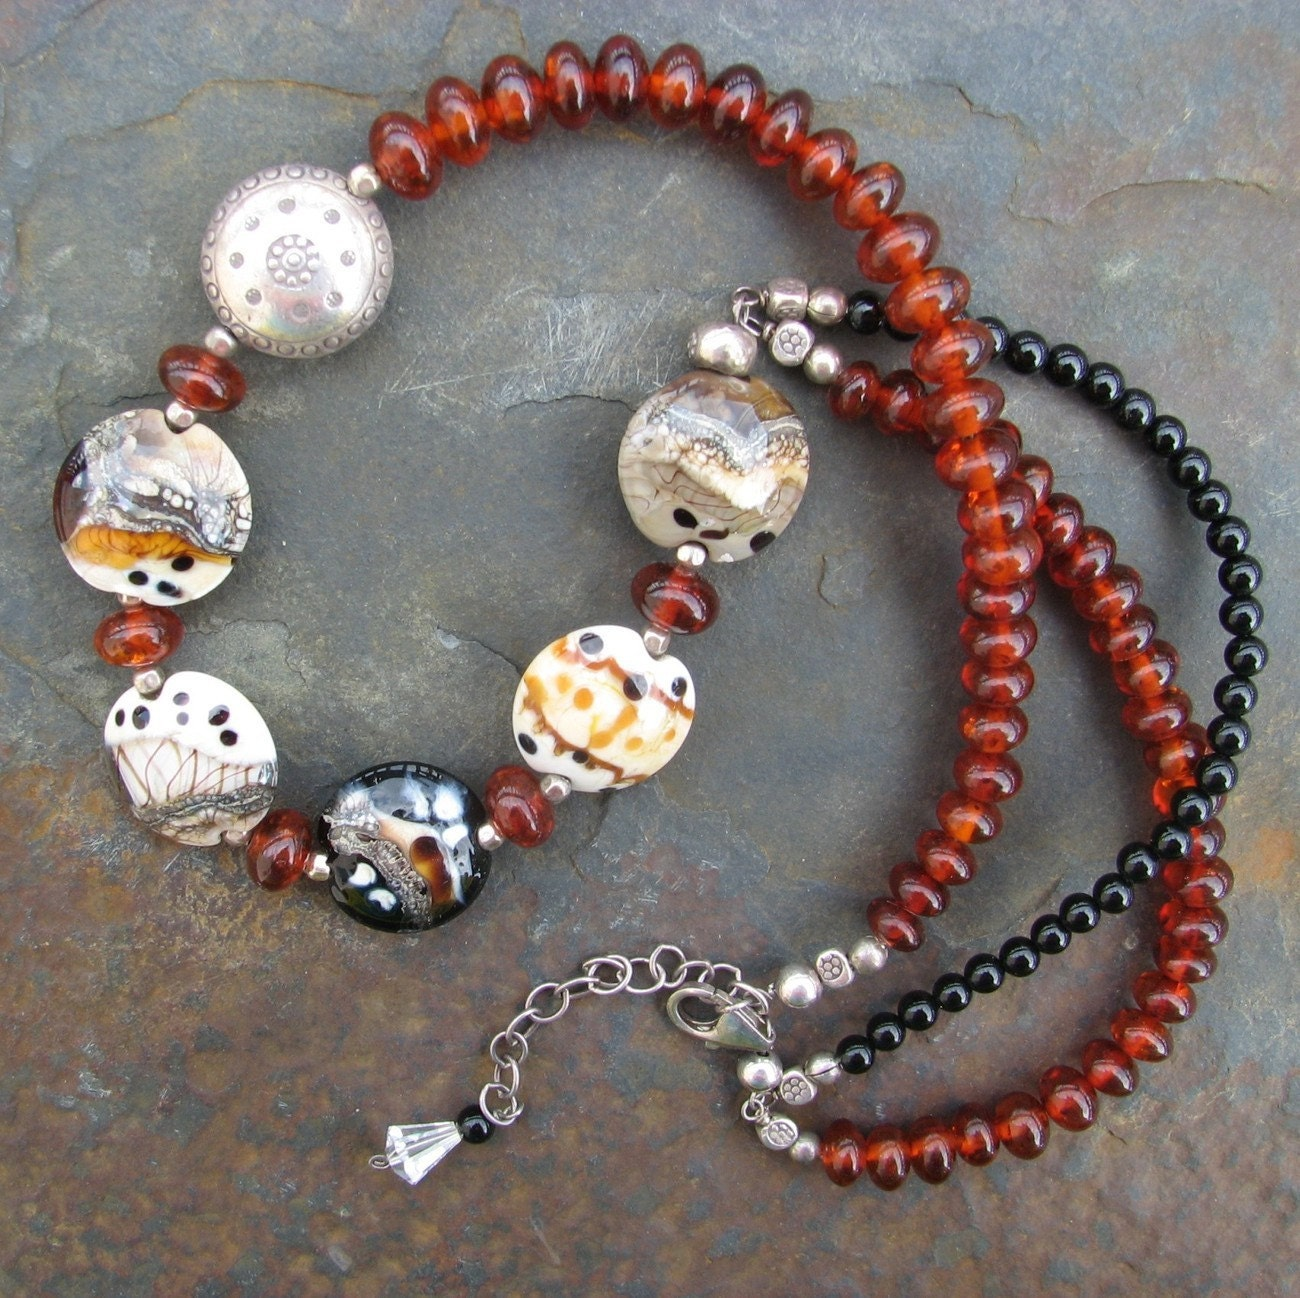 Outback artisan lampwork with Baltic amber and black onyx